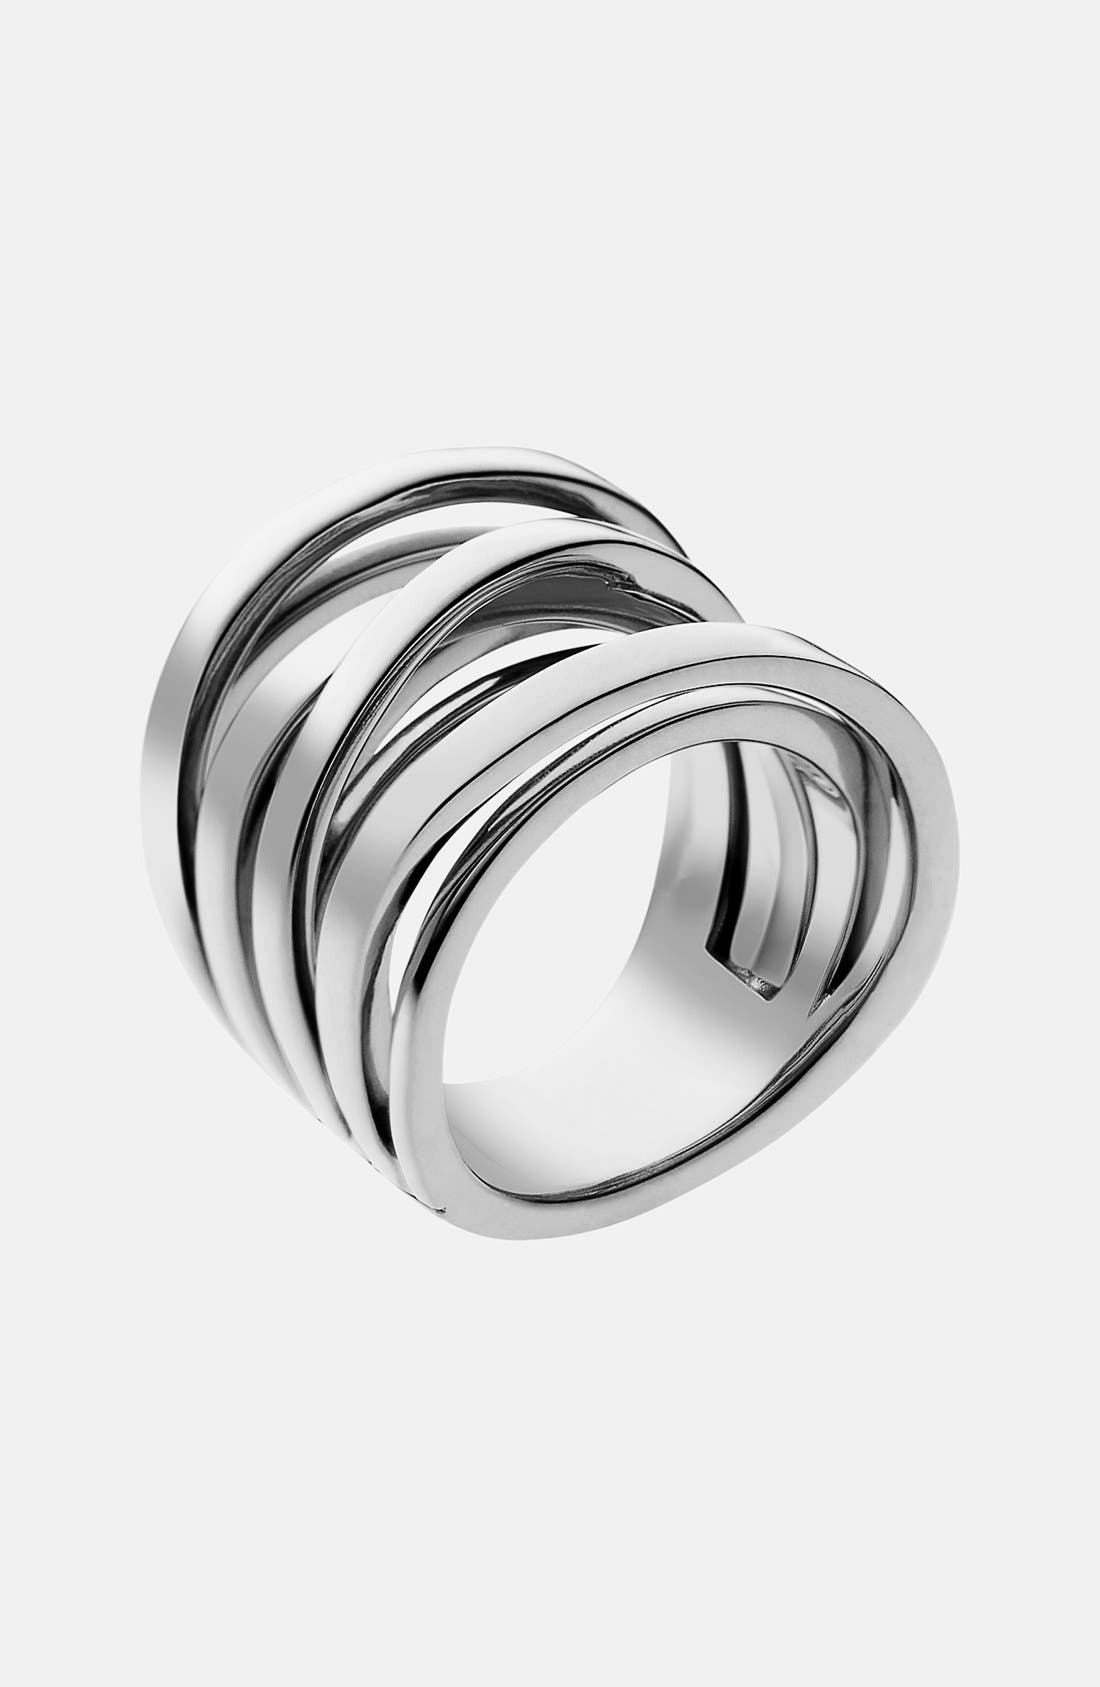 Alternate Image 1 Selected - Michael Kors 'Brilliance' Large Intertwined Ring